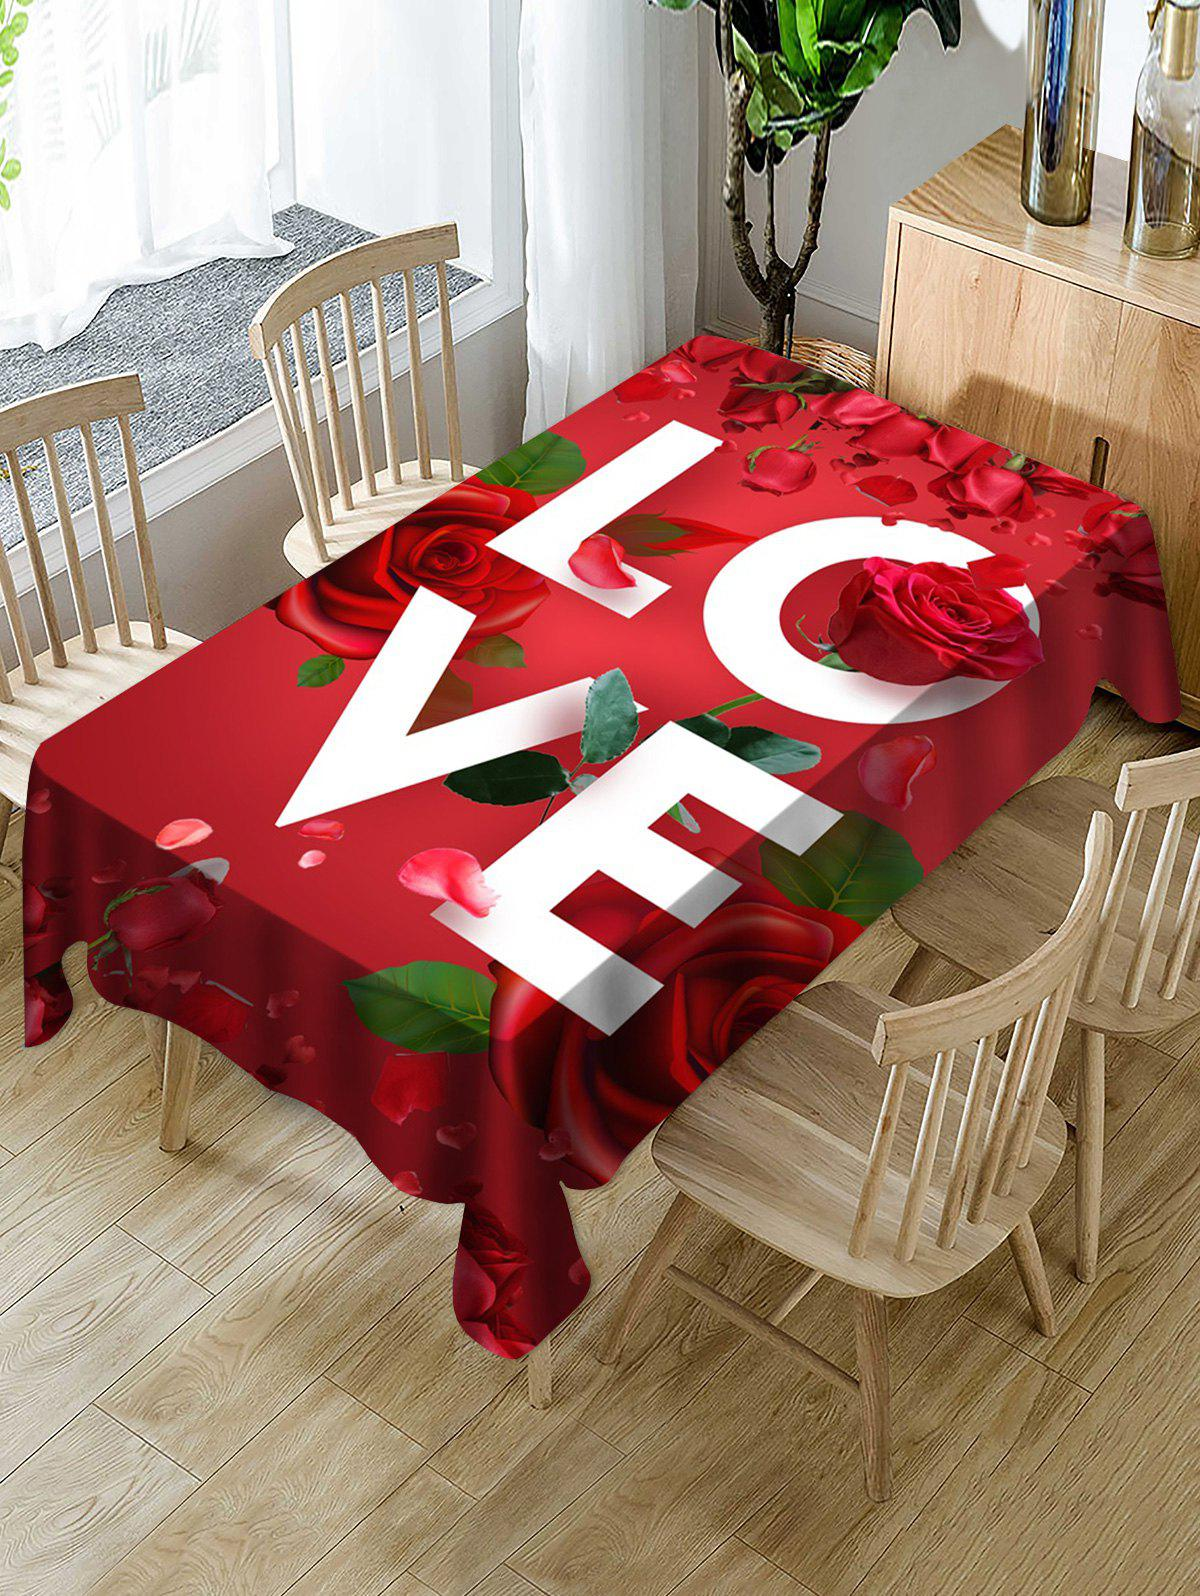 Chic Valentines Day LOVE Rose Print Fabric Waterproof Tablecloth